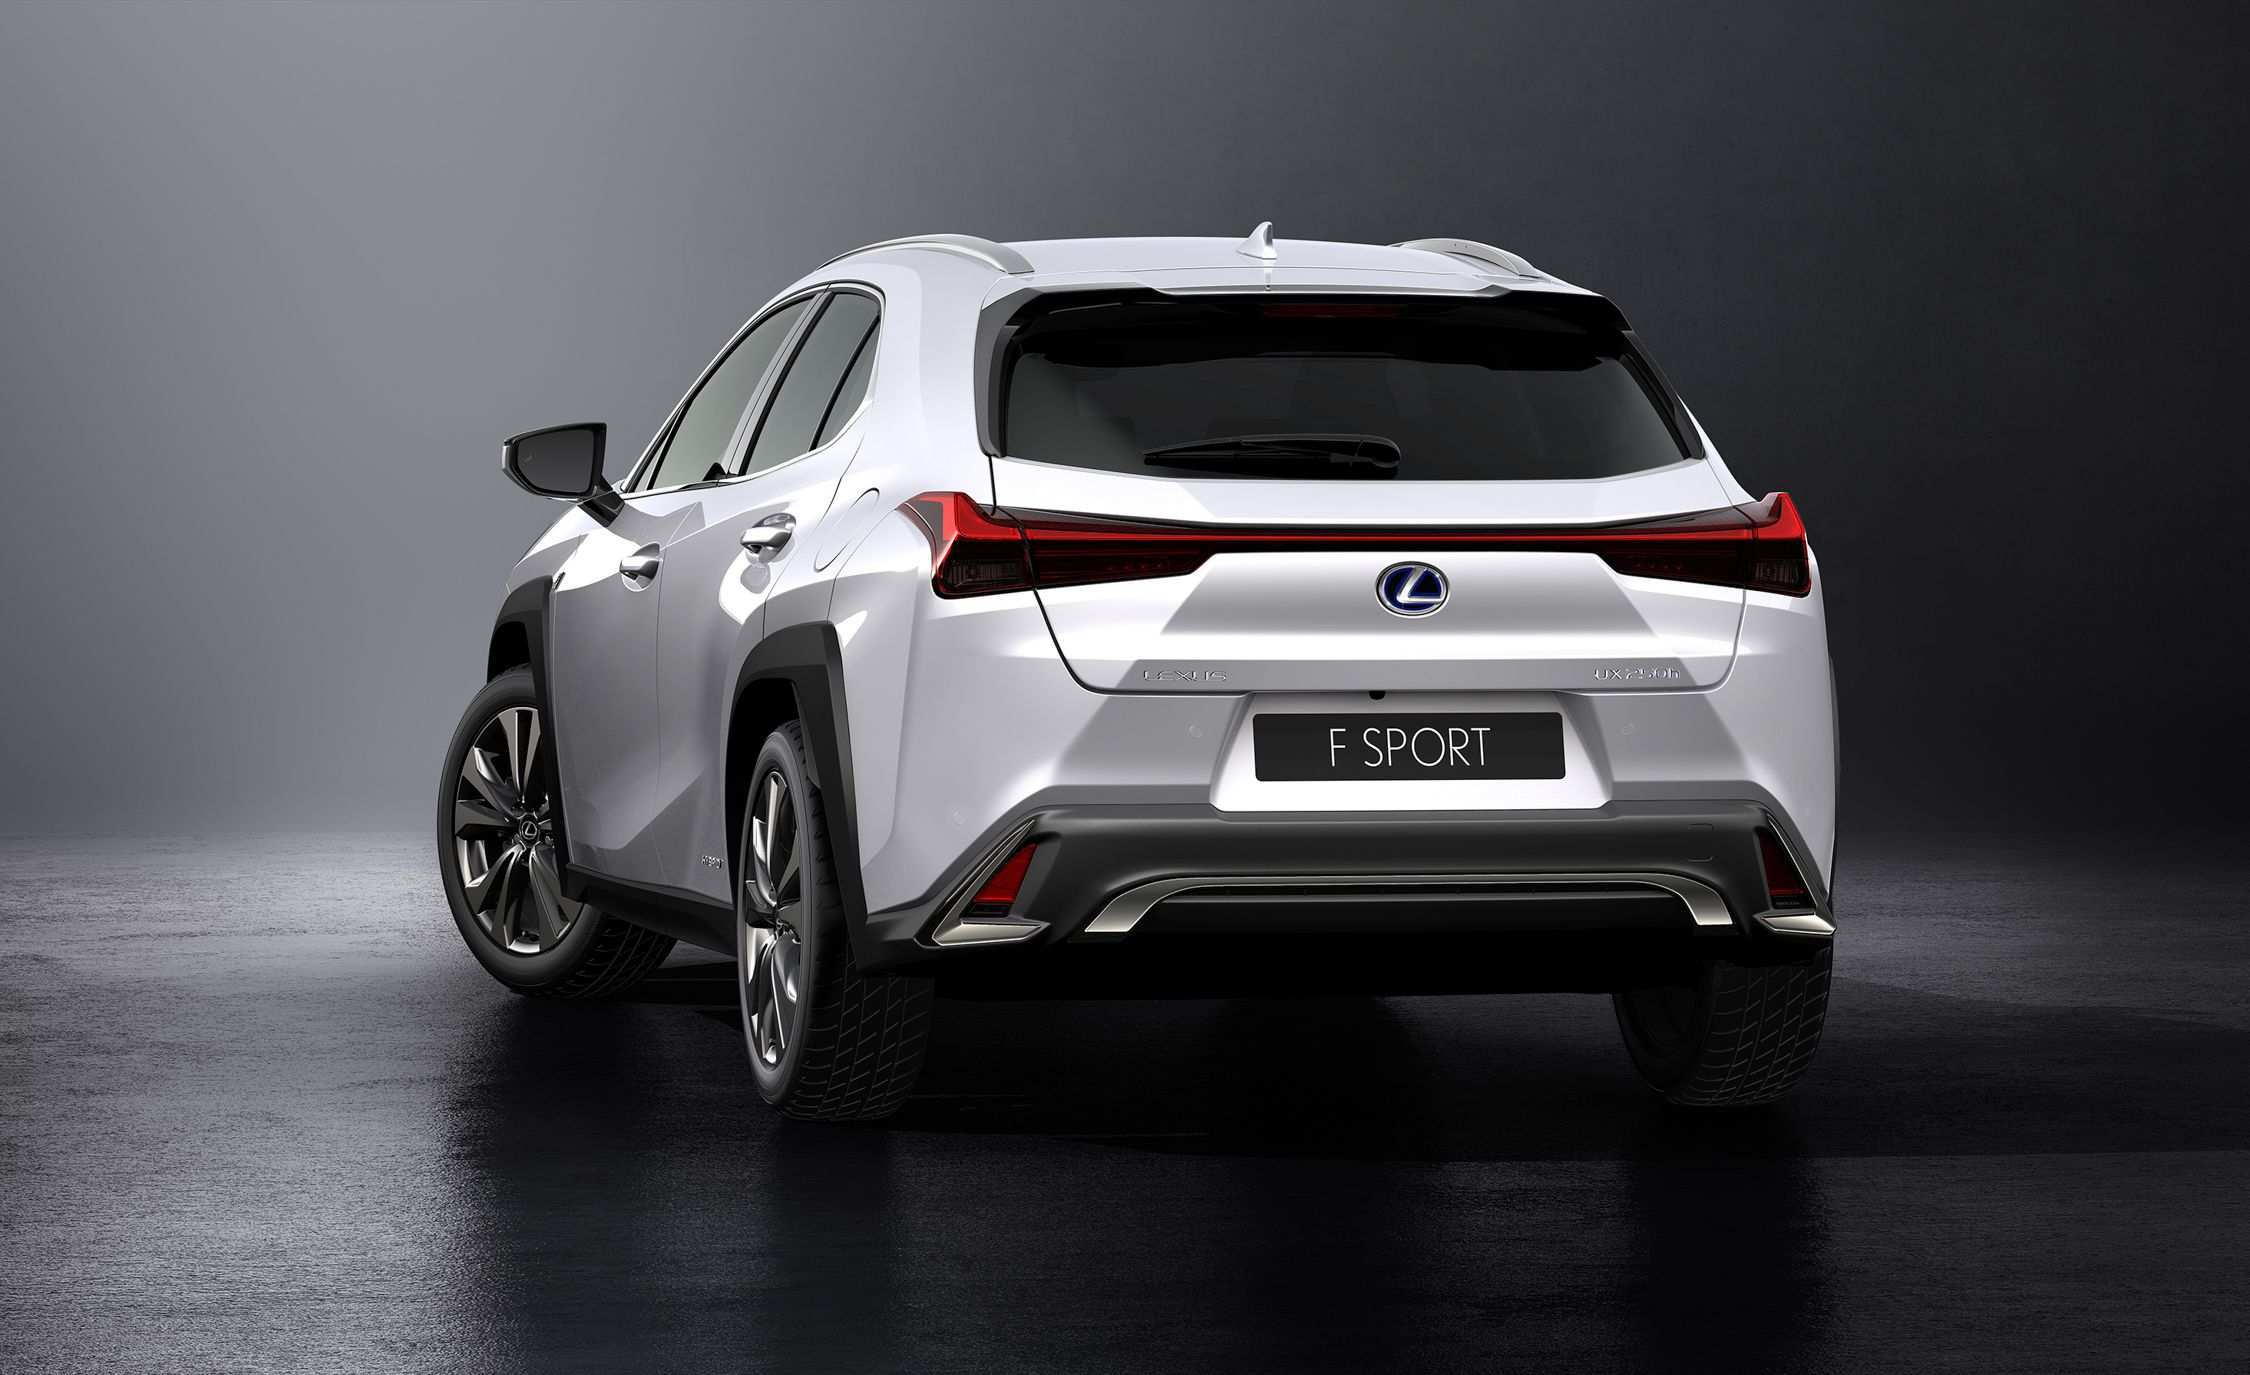 16 All New Lexus Ux 2019 Price 2 New Review with Lexus Ux 2019 Price 2